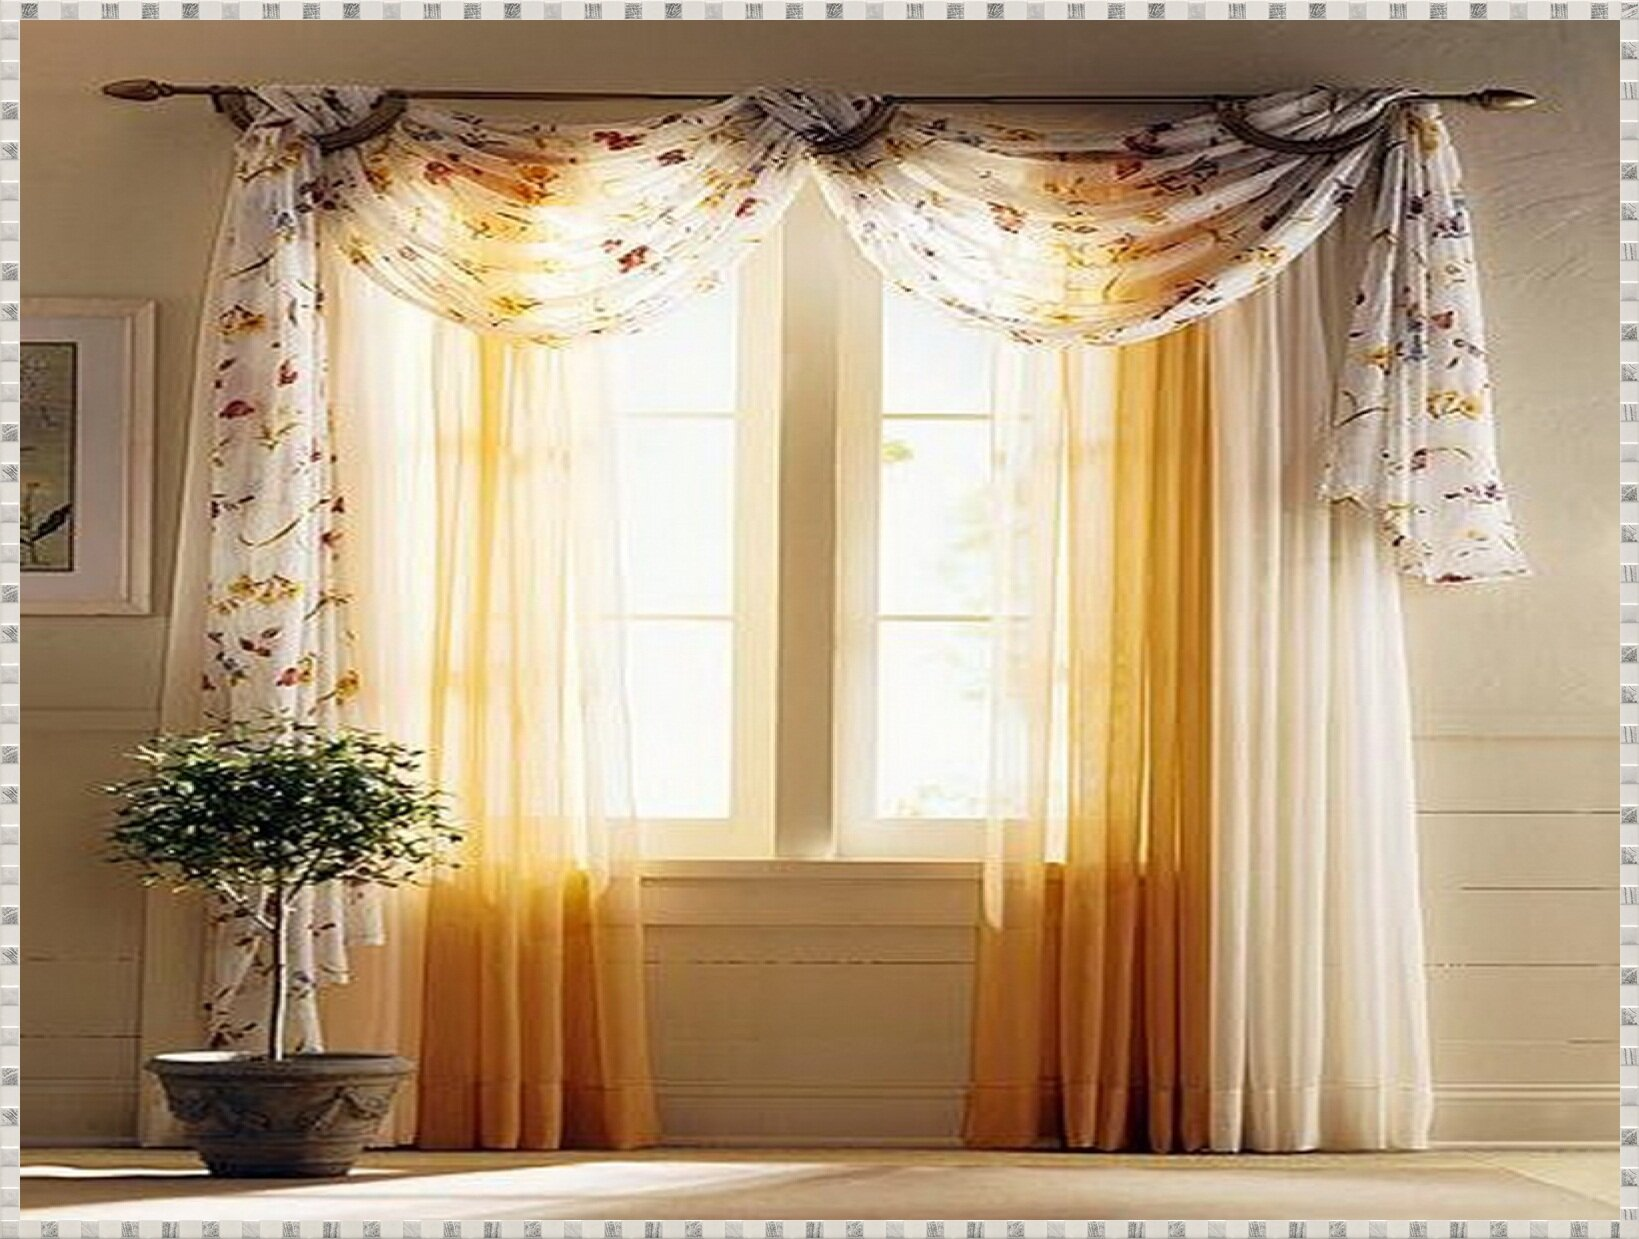 Cute Living Room Valances for Your Home Decorating Ideas: Living Room Valances | Window Curtains And Valances | Valance Windows